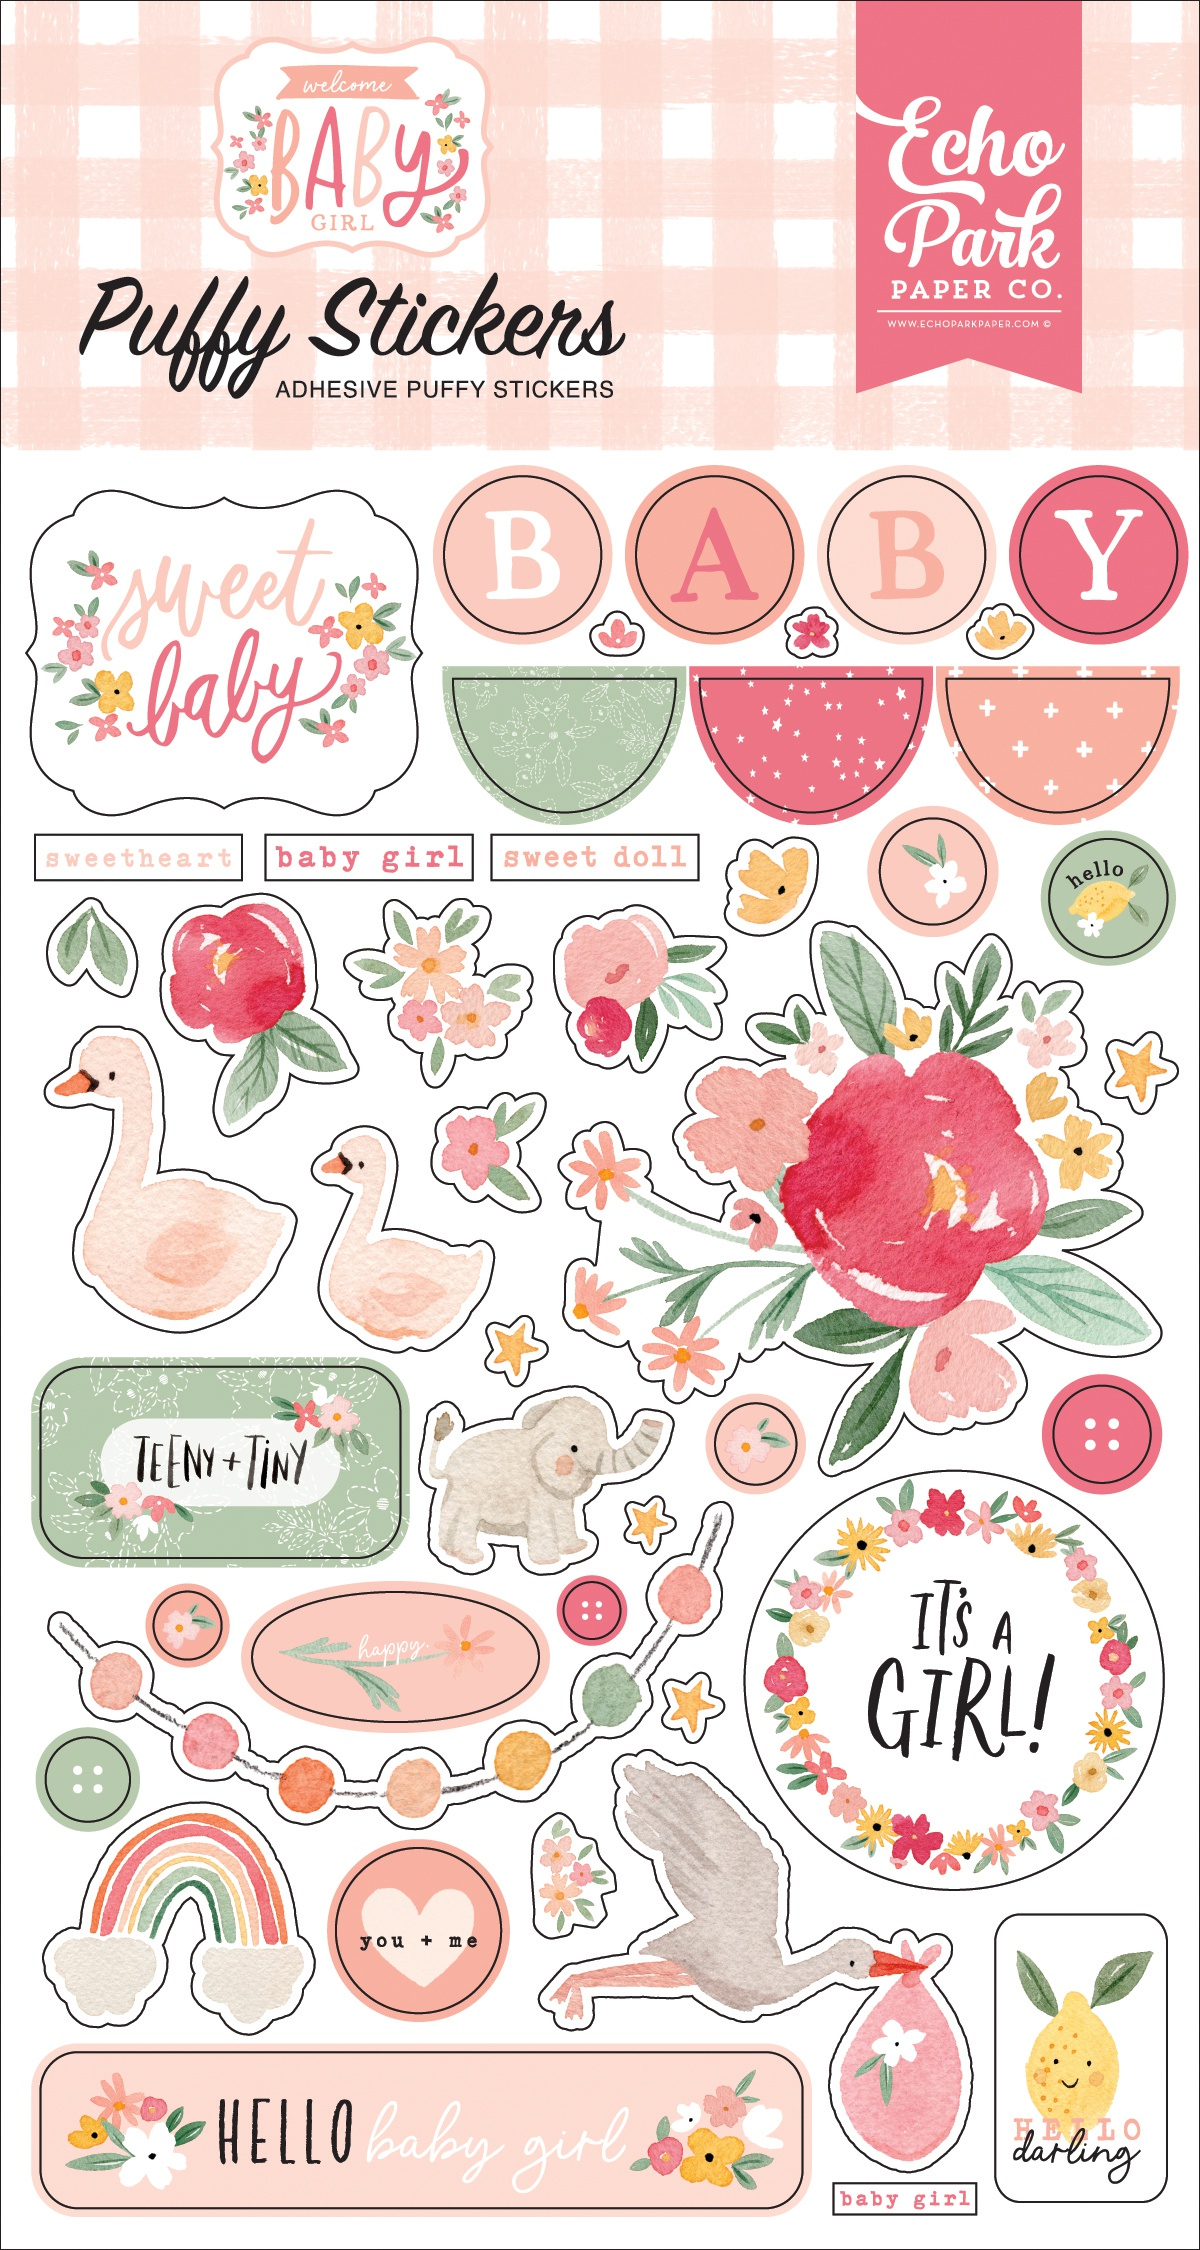 Echo Park - Welcome Baby Girl - Puffy Stickers